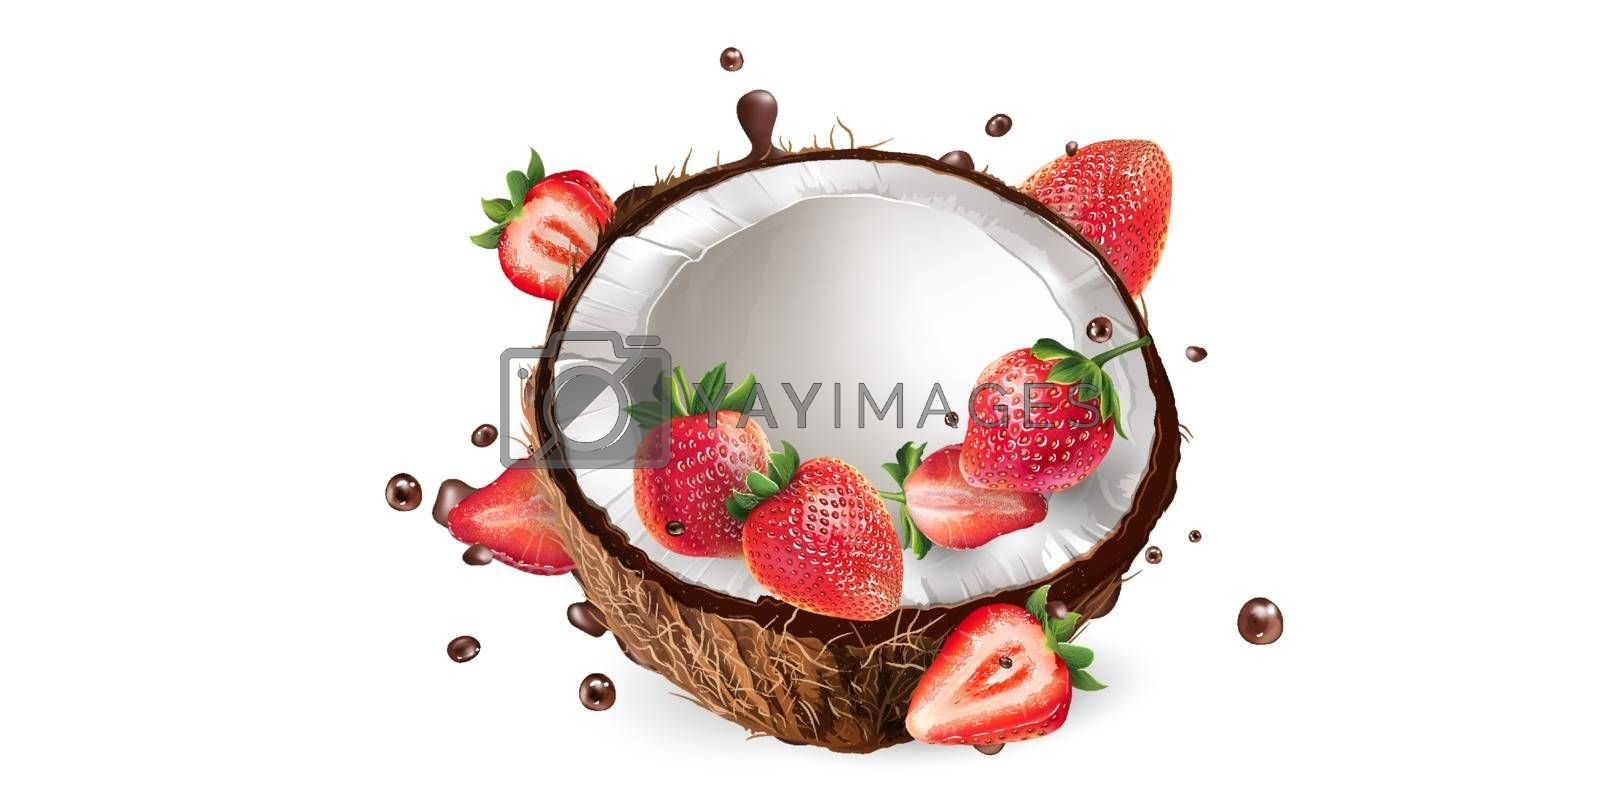 Fresh coconut with strawberries in chocolate splashes on a white background. Realistic vector illustration.